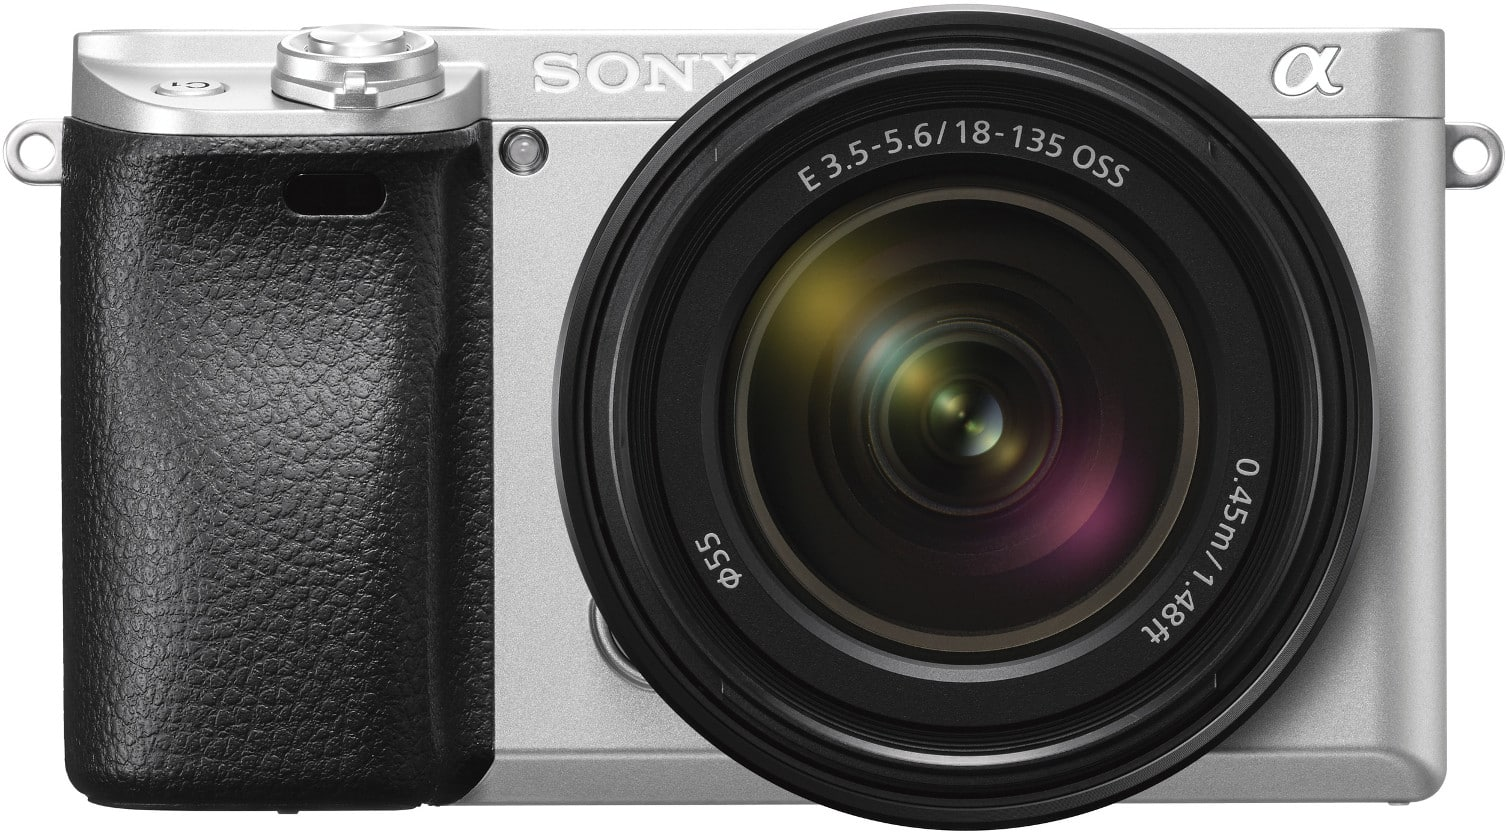 Sony a6300 Mirrorless Digital Camera with 18-135mm Lens $898.00